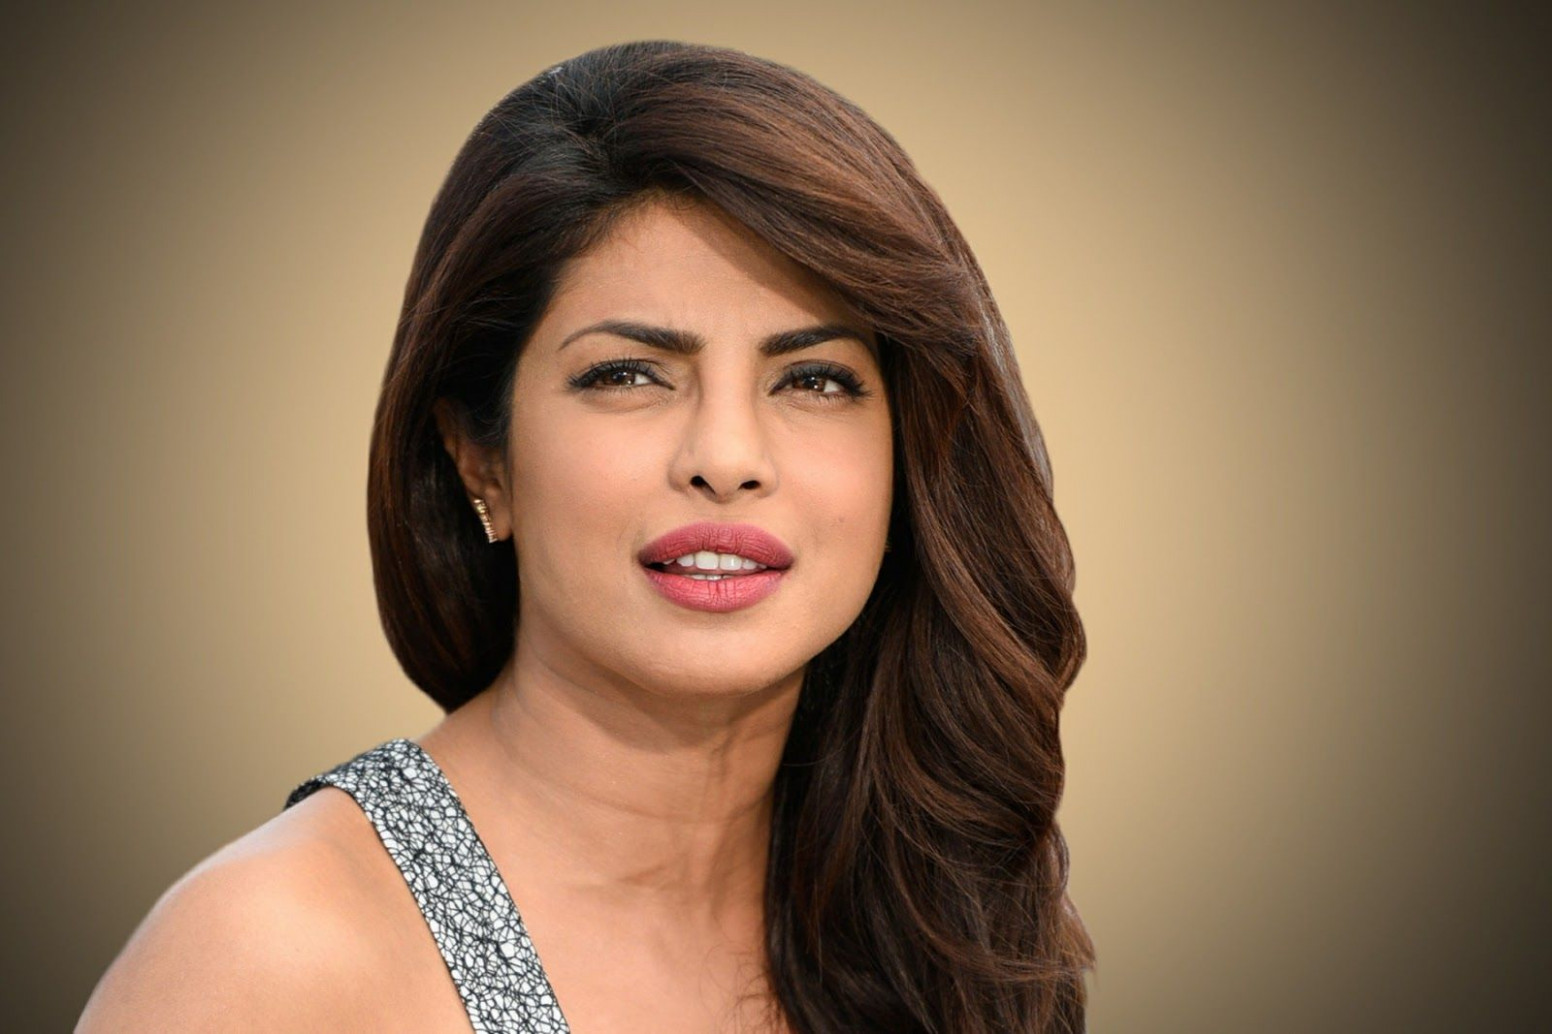 Priyanka Chopra HD Wallpaper Gallery - Filmnstars ...